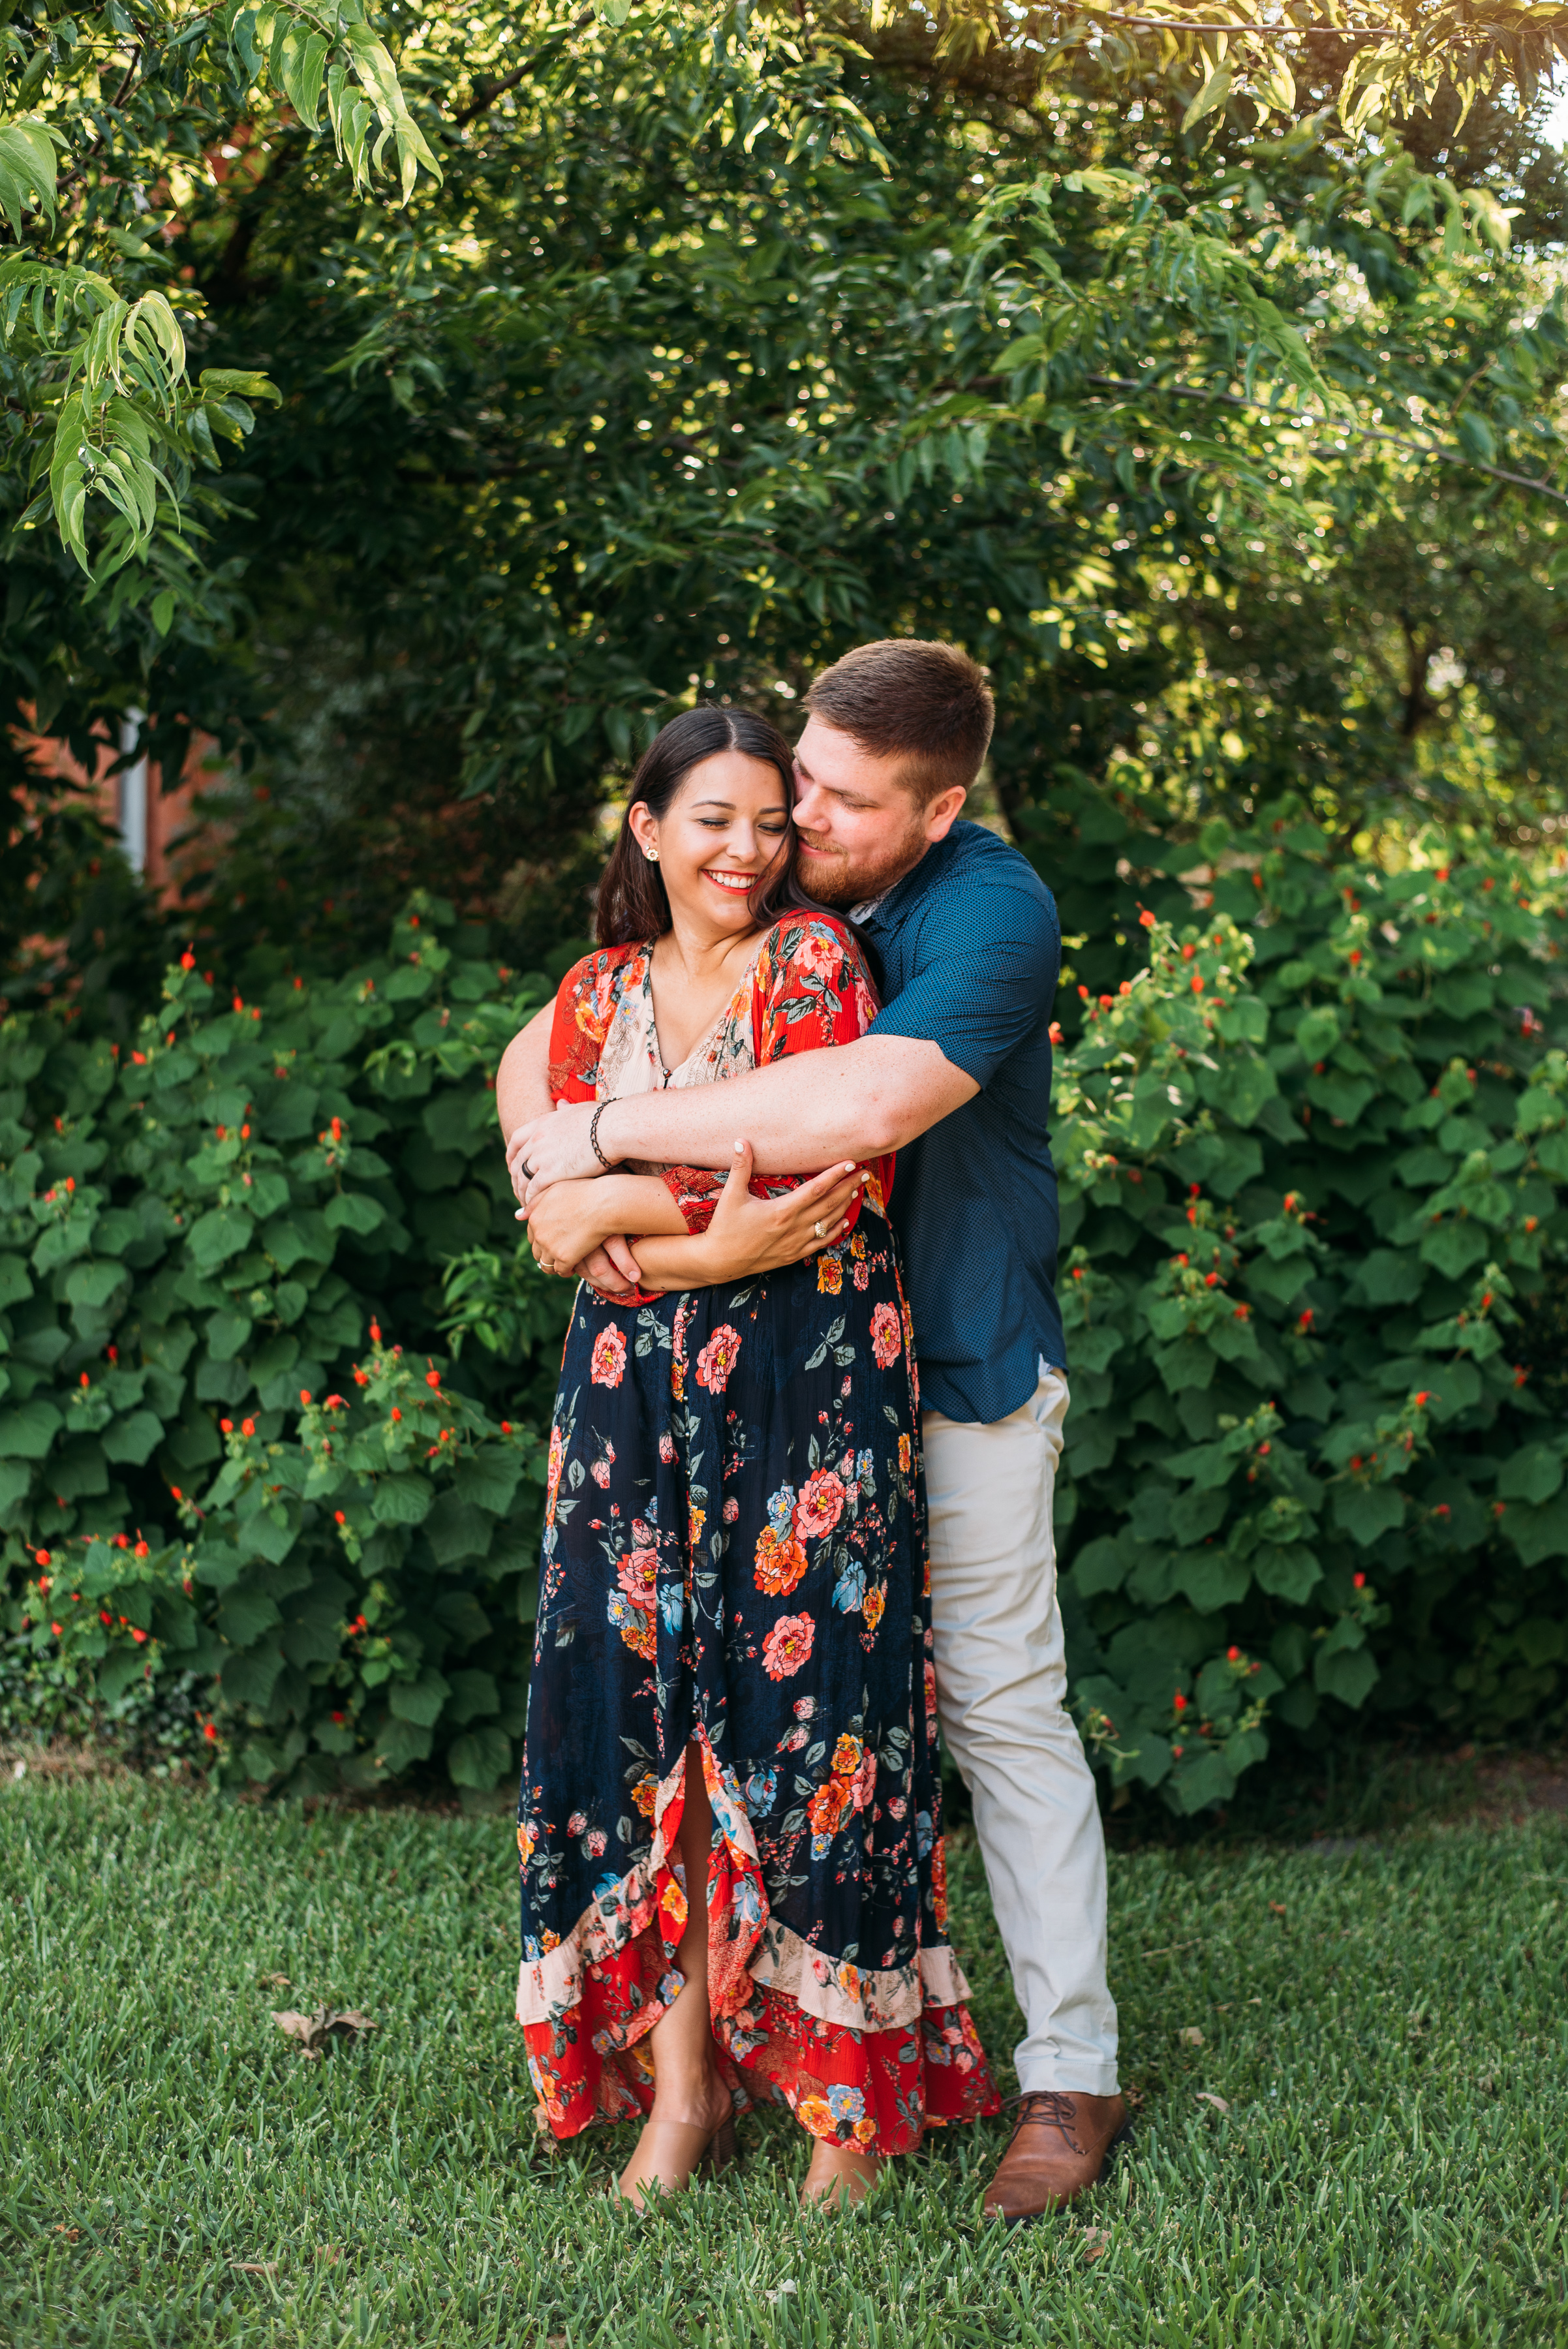 Downtown-Bryan-Engagement-George-Bush-Library-Texas-A&M-University-College-Station-Wedding-Photographer-San-Angel-Photo-Mark-Abigail-Jake-15.jpg